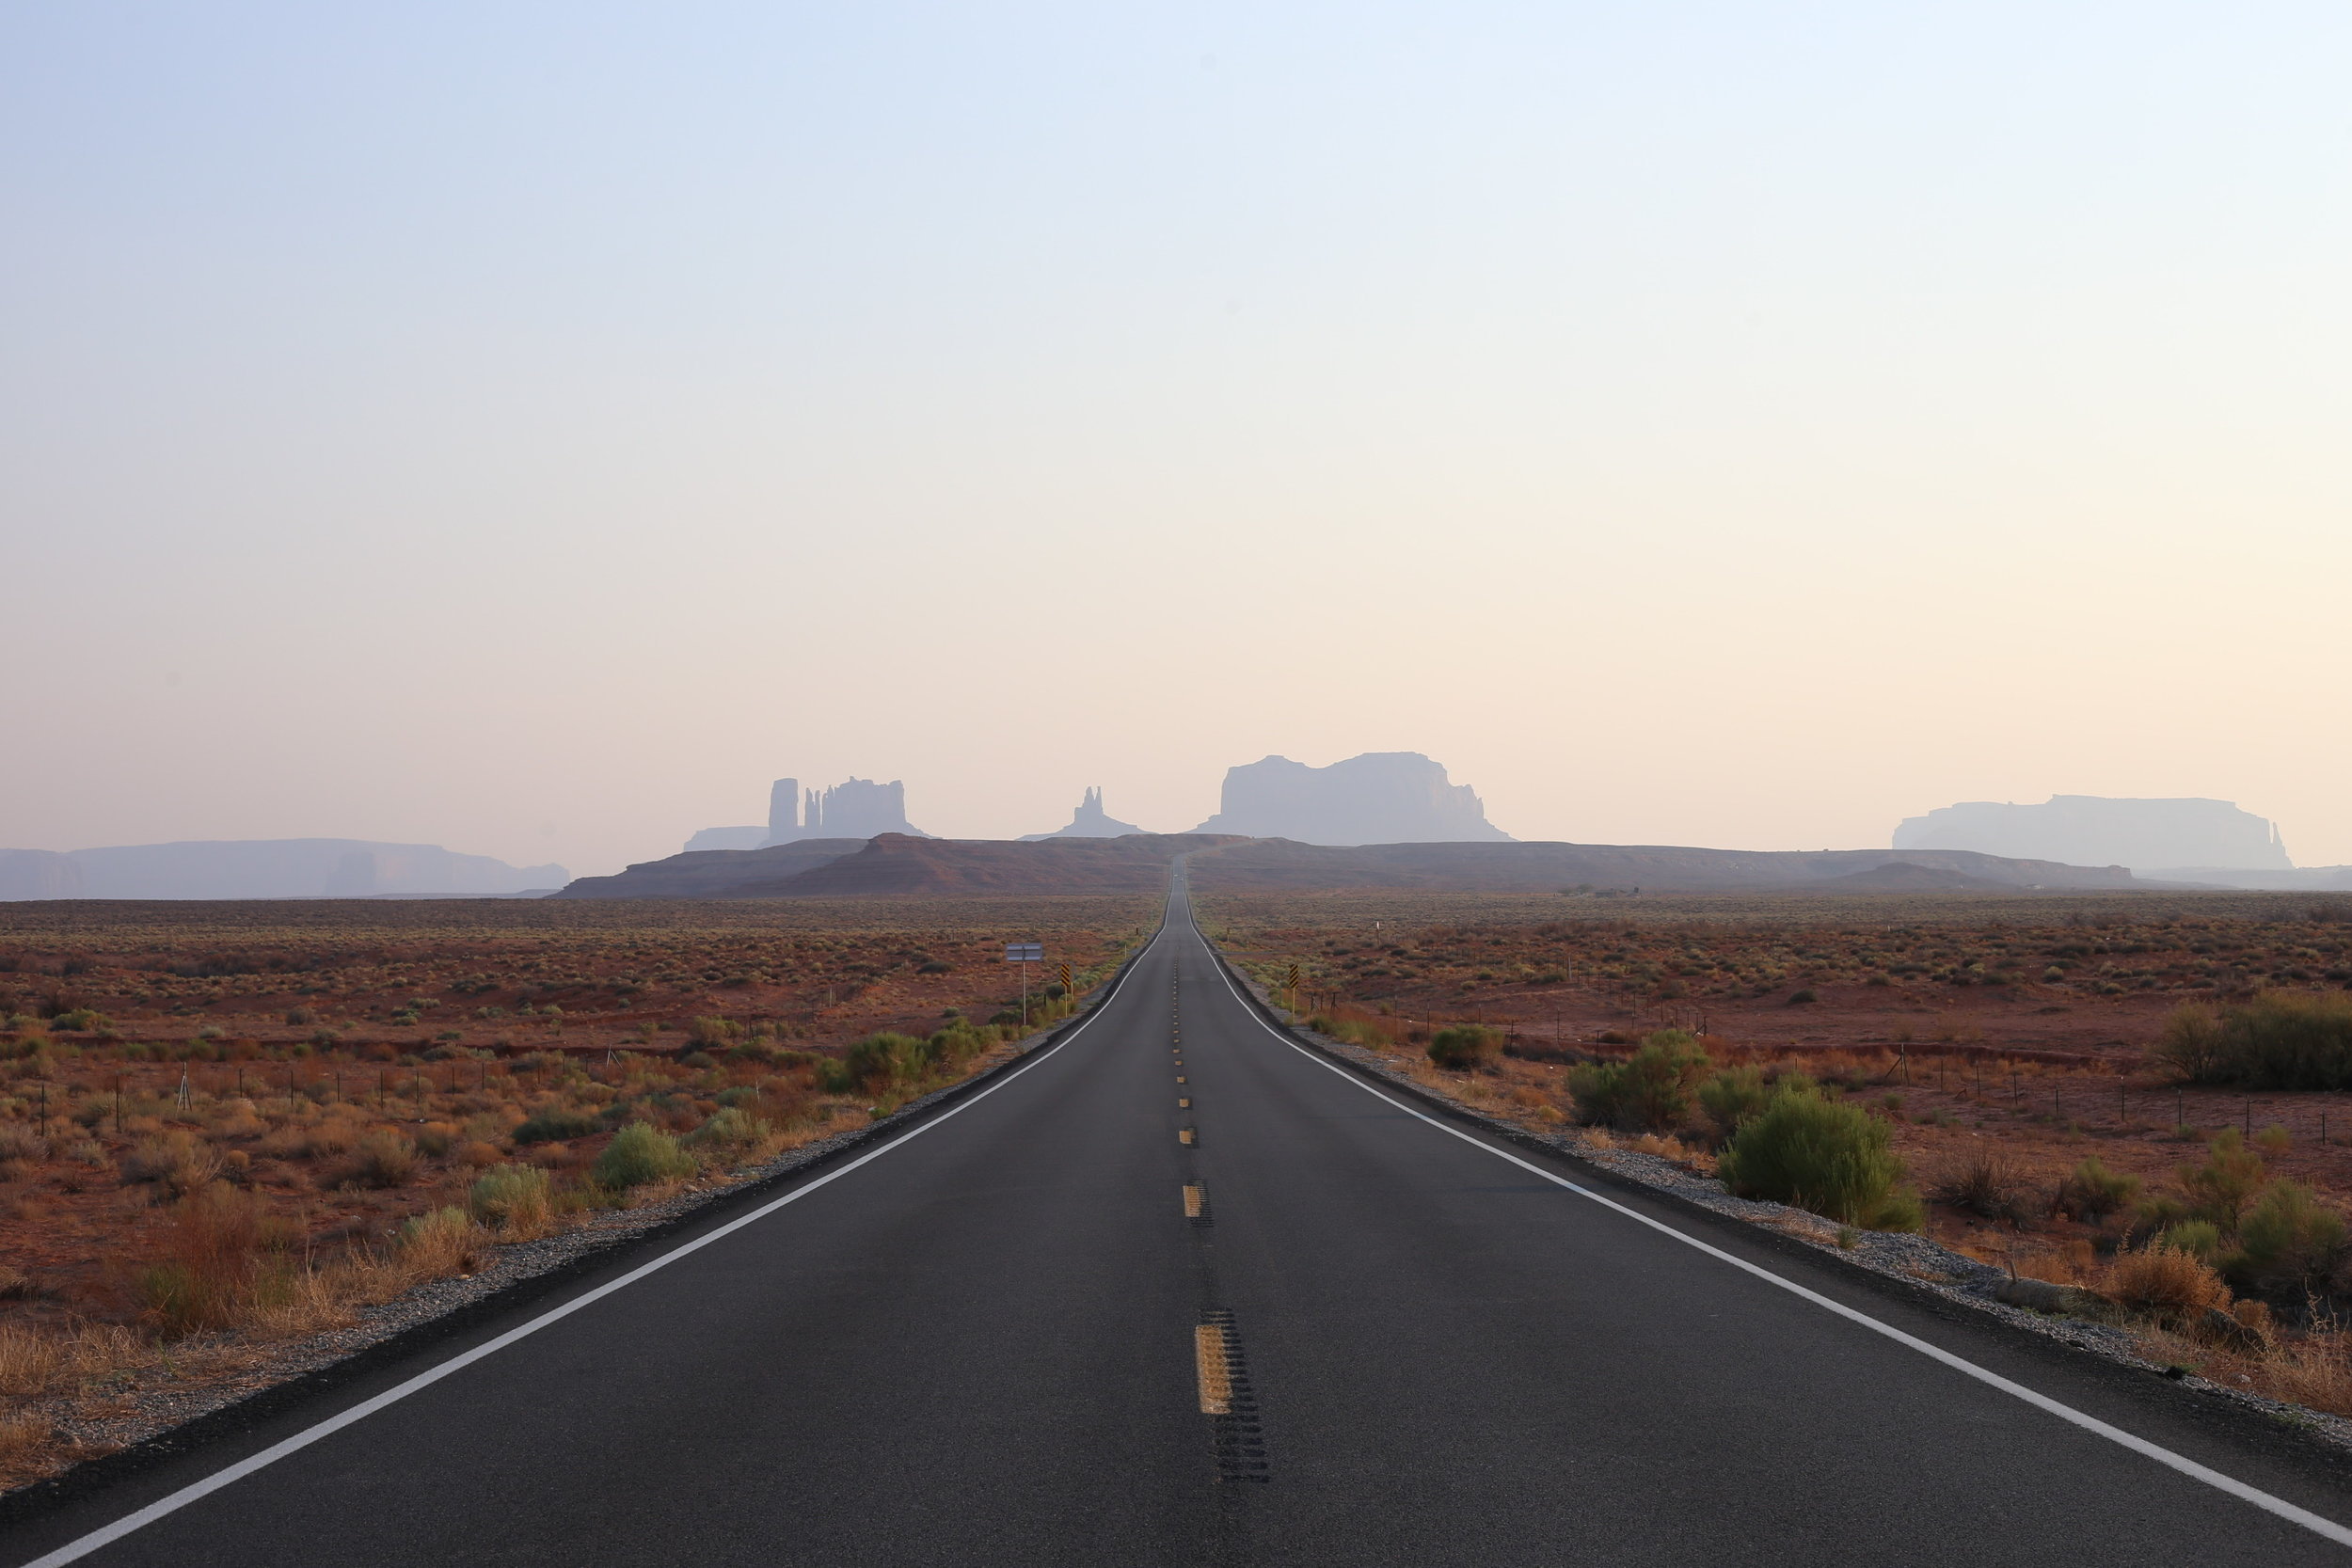 desert-road-to-nowhere